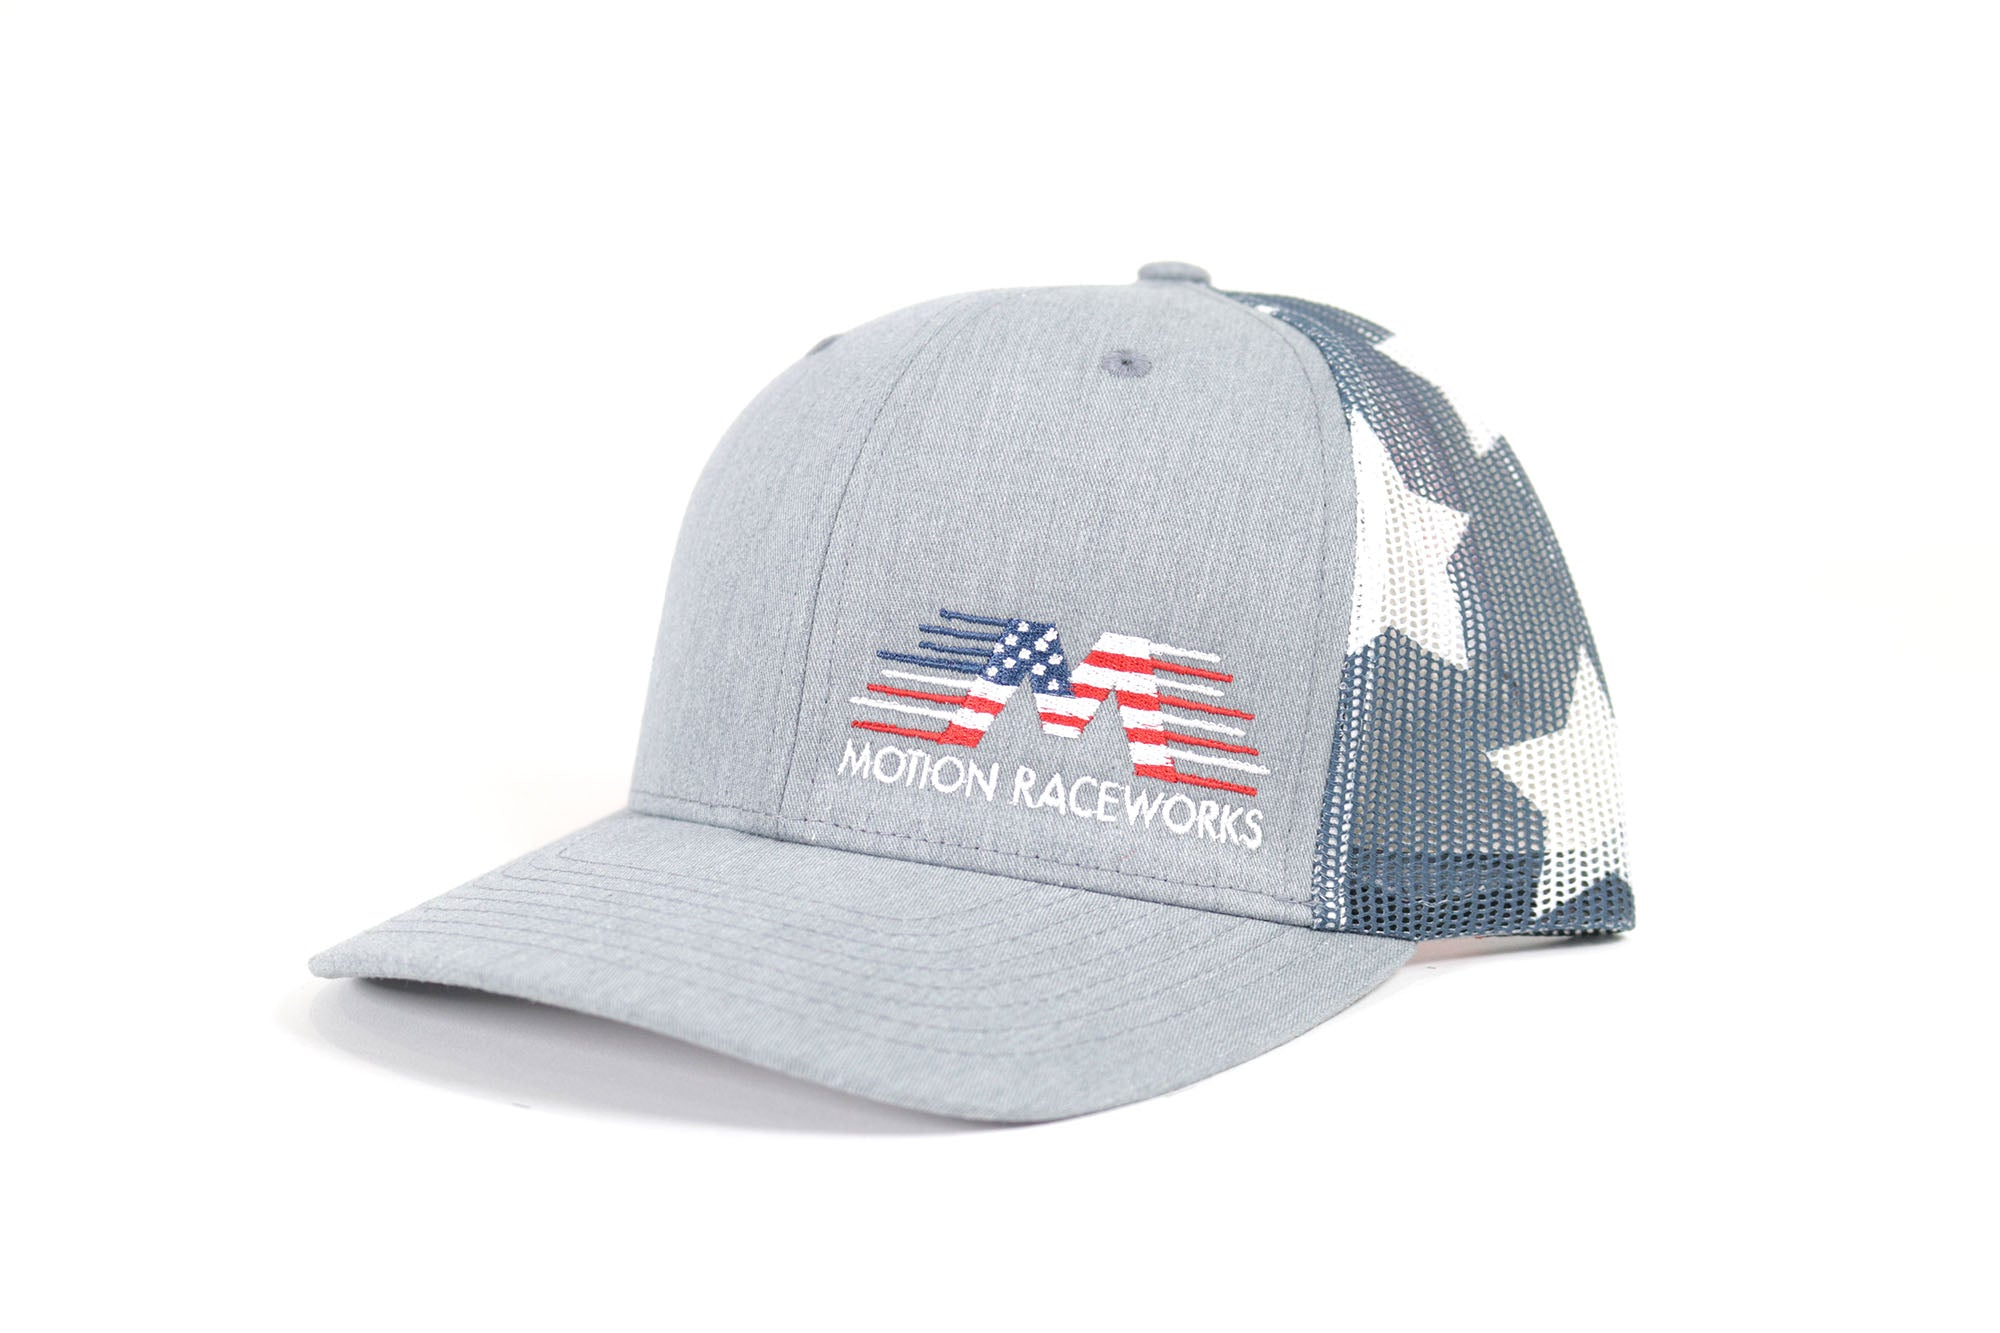 Freedom Hat!  Limited Edition as seen on the Bald rEagle video - Motion Raceworks